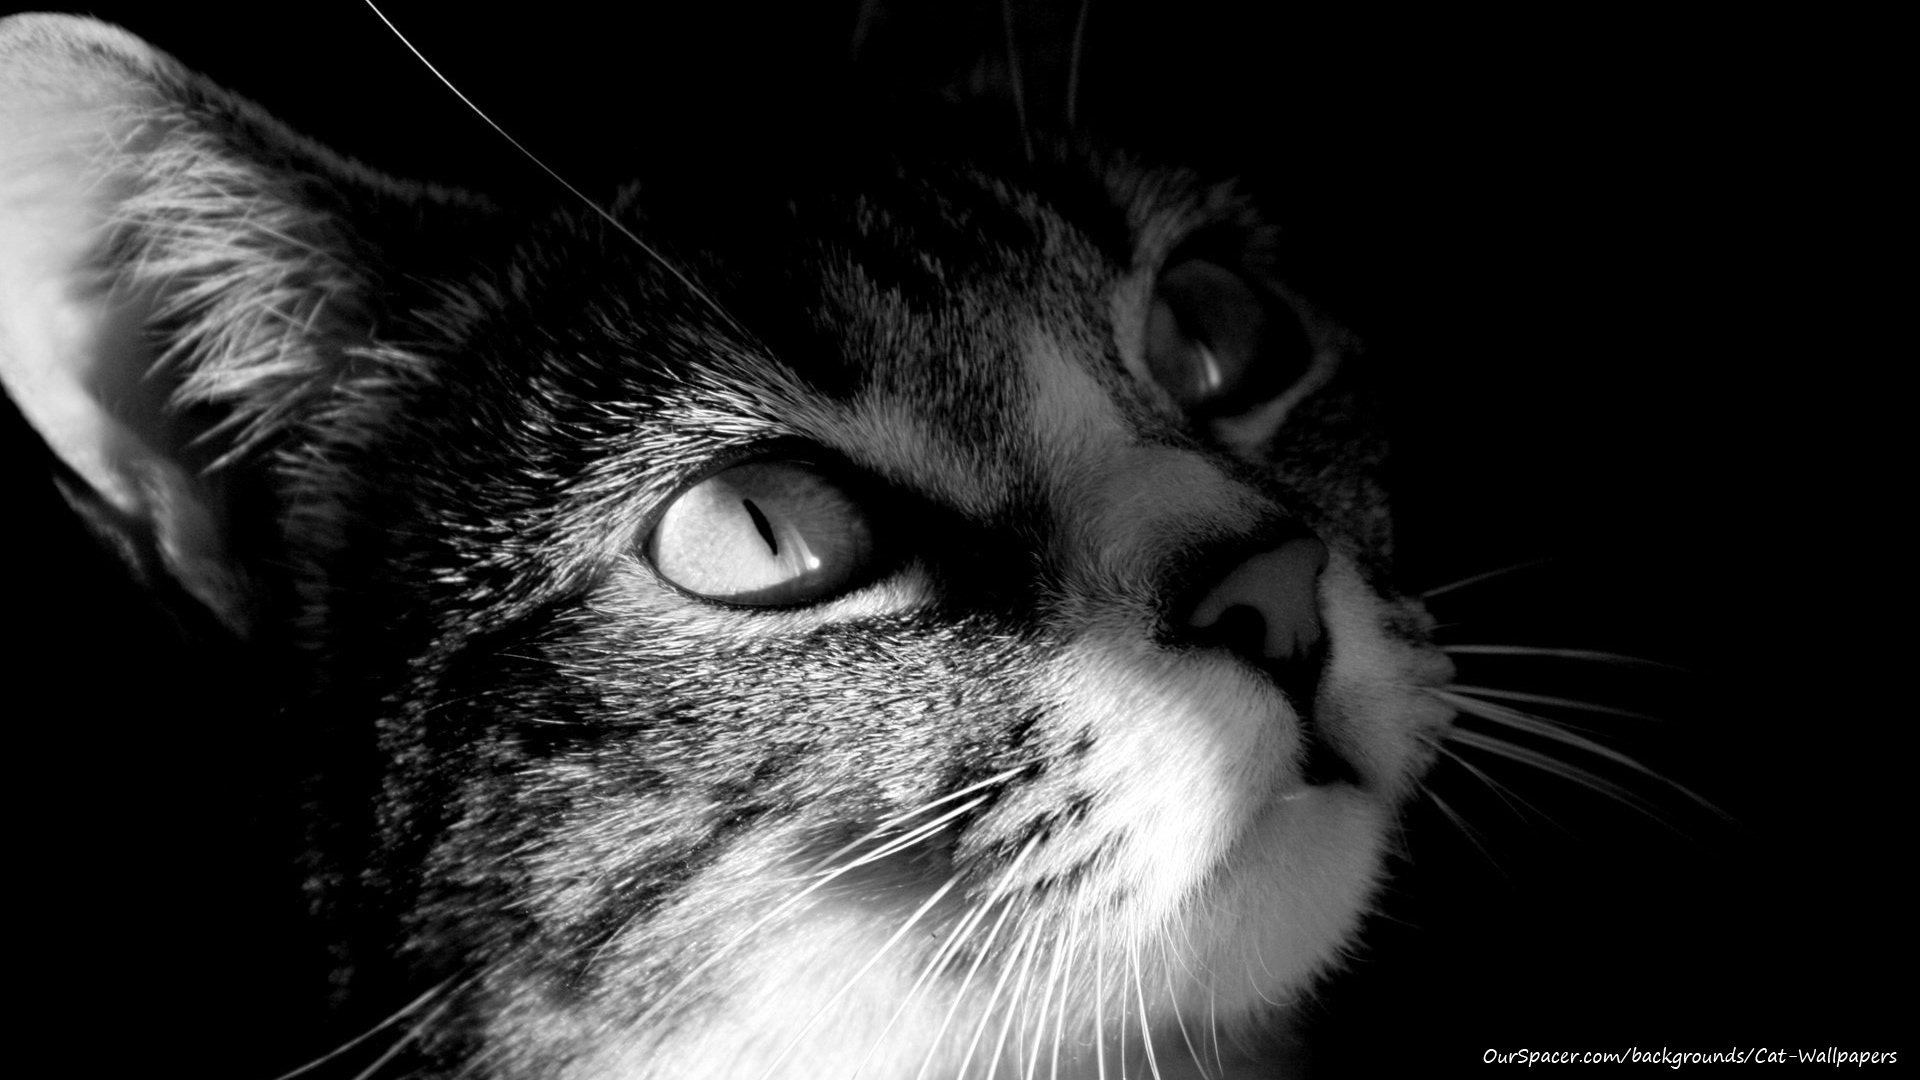 Black and white striped cat 1920x1080 wallpapers for myspace, twitter, and hi5 backgrounds